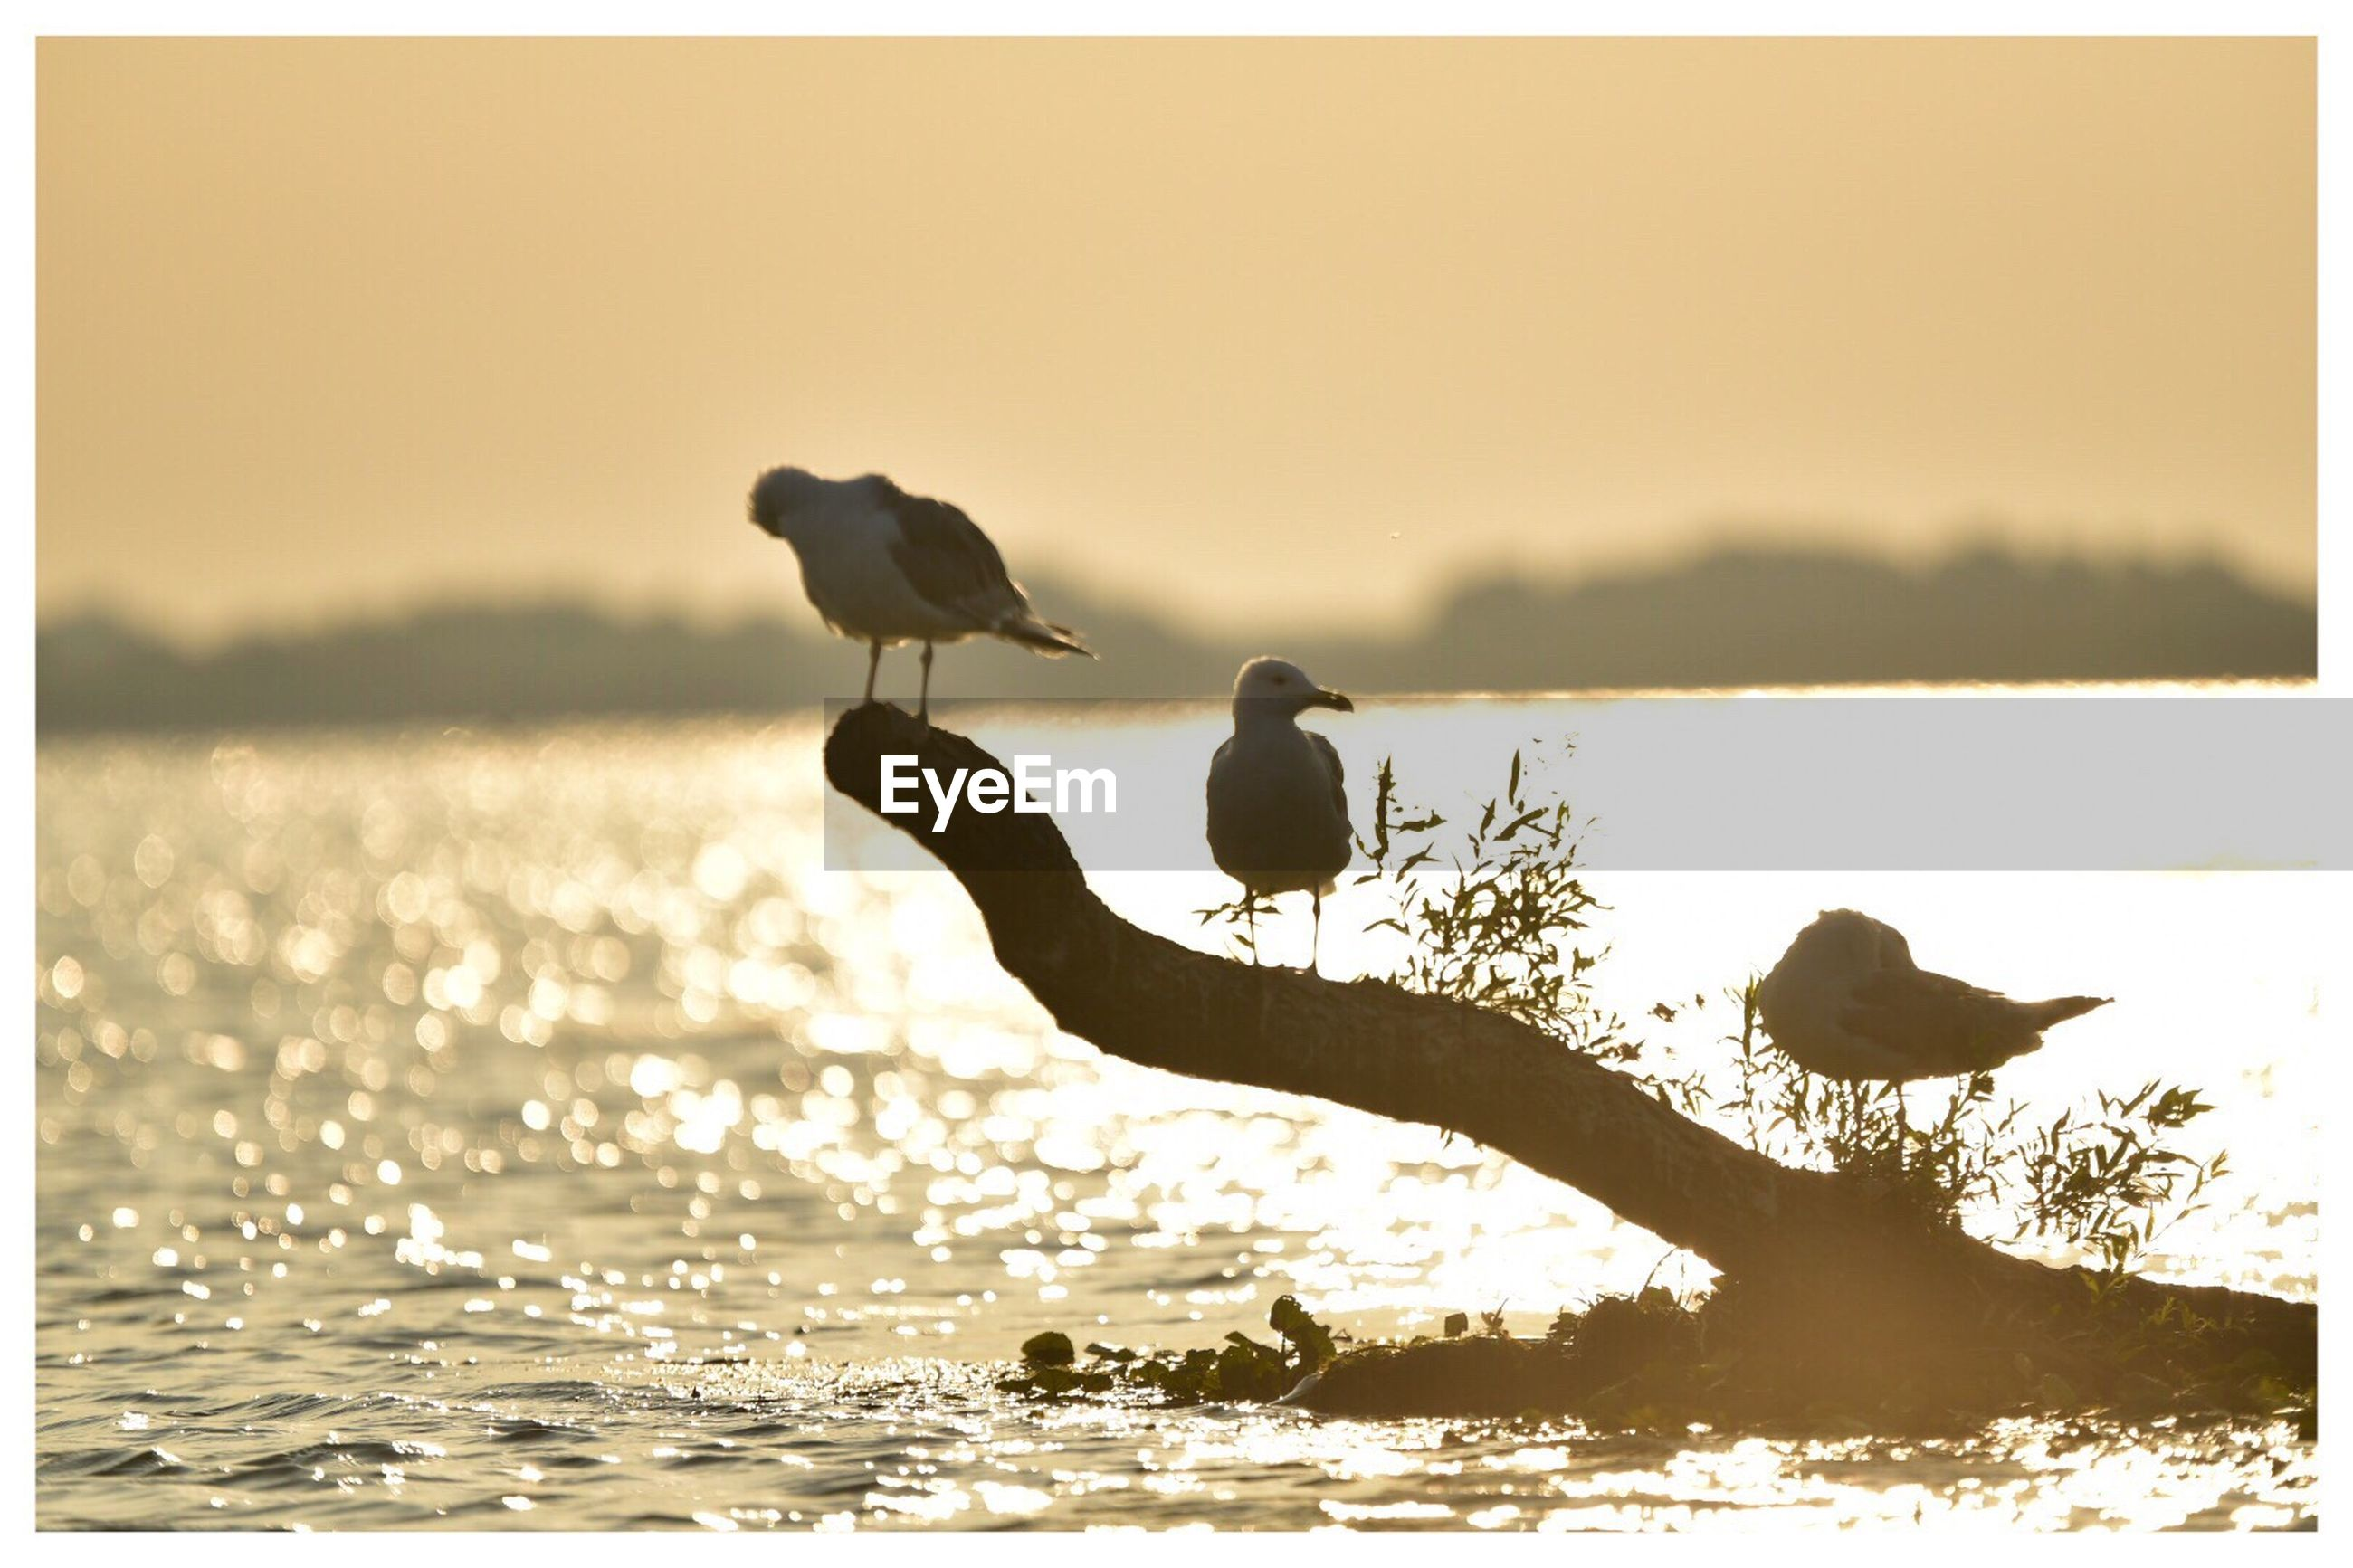 Seagulls perching on driftwood in river during sunset